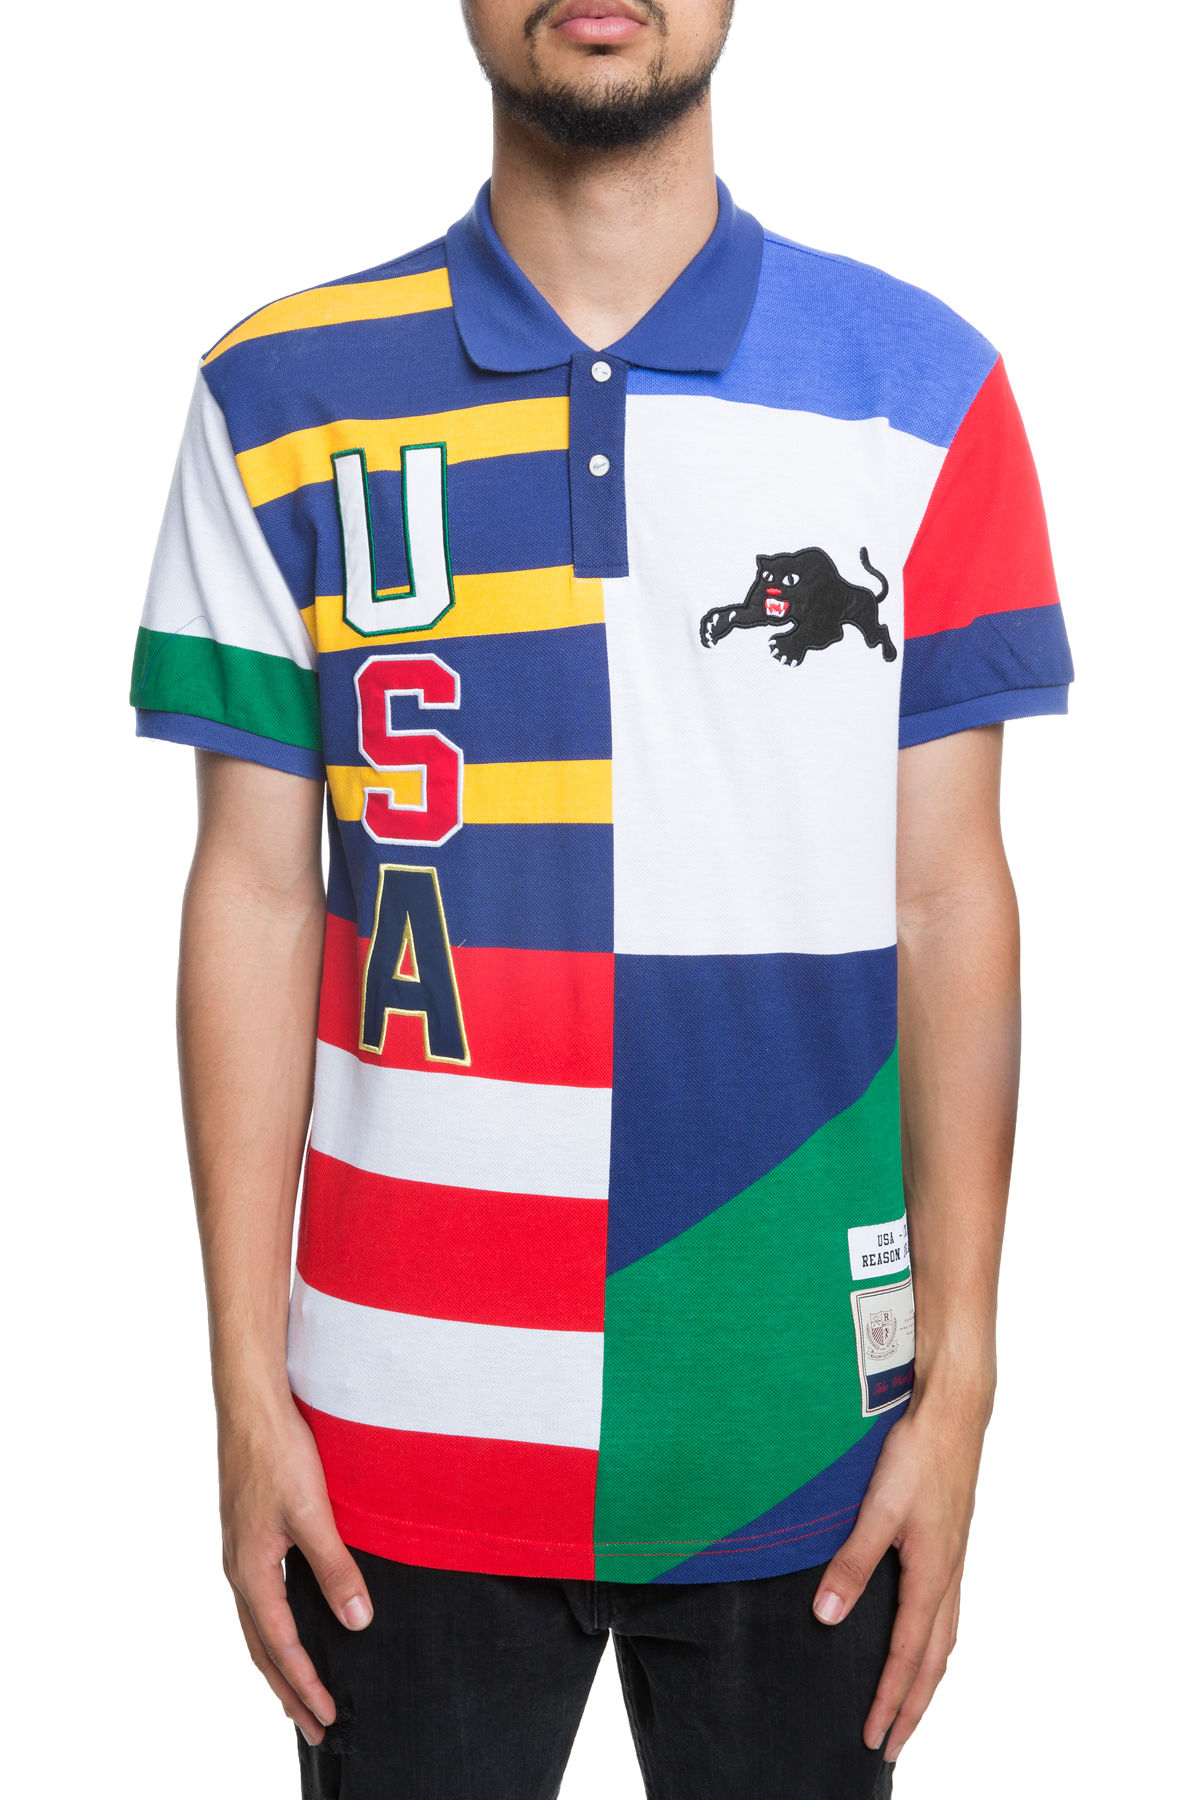 Image of The USA Crew SS Polo in Flag Multi